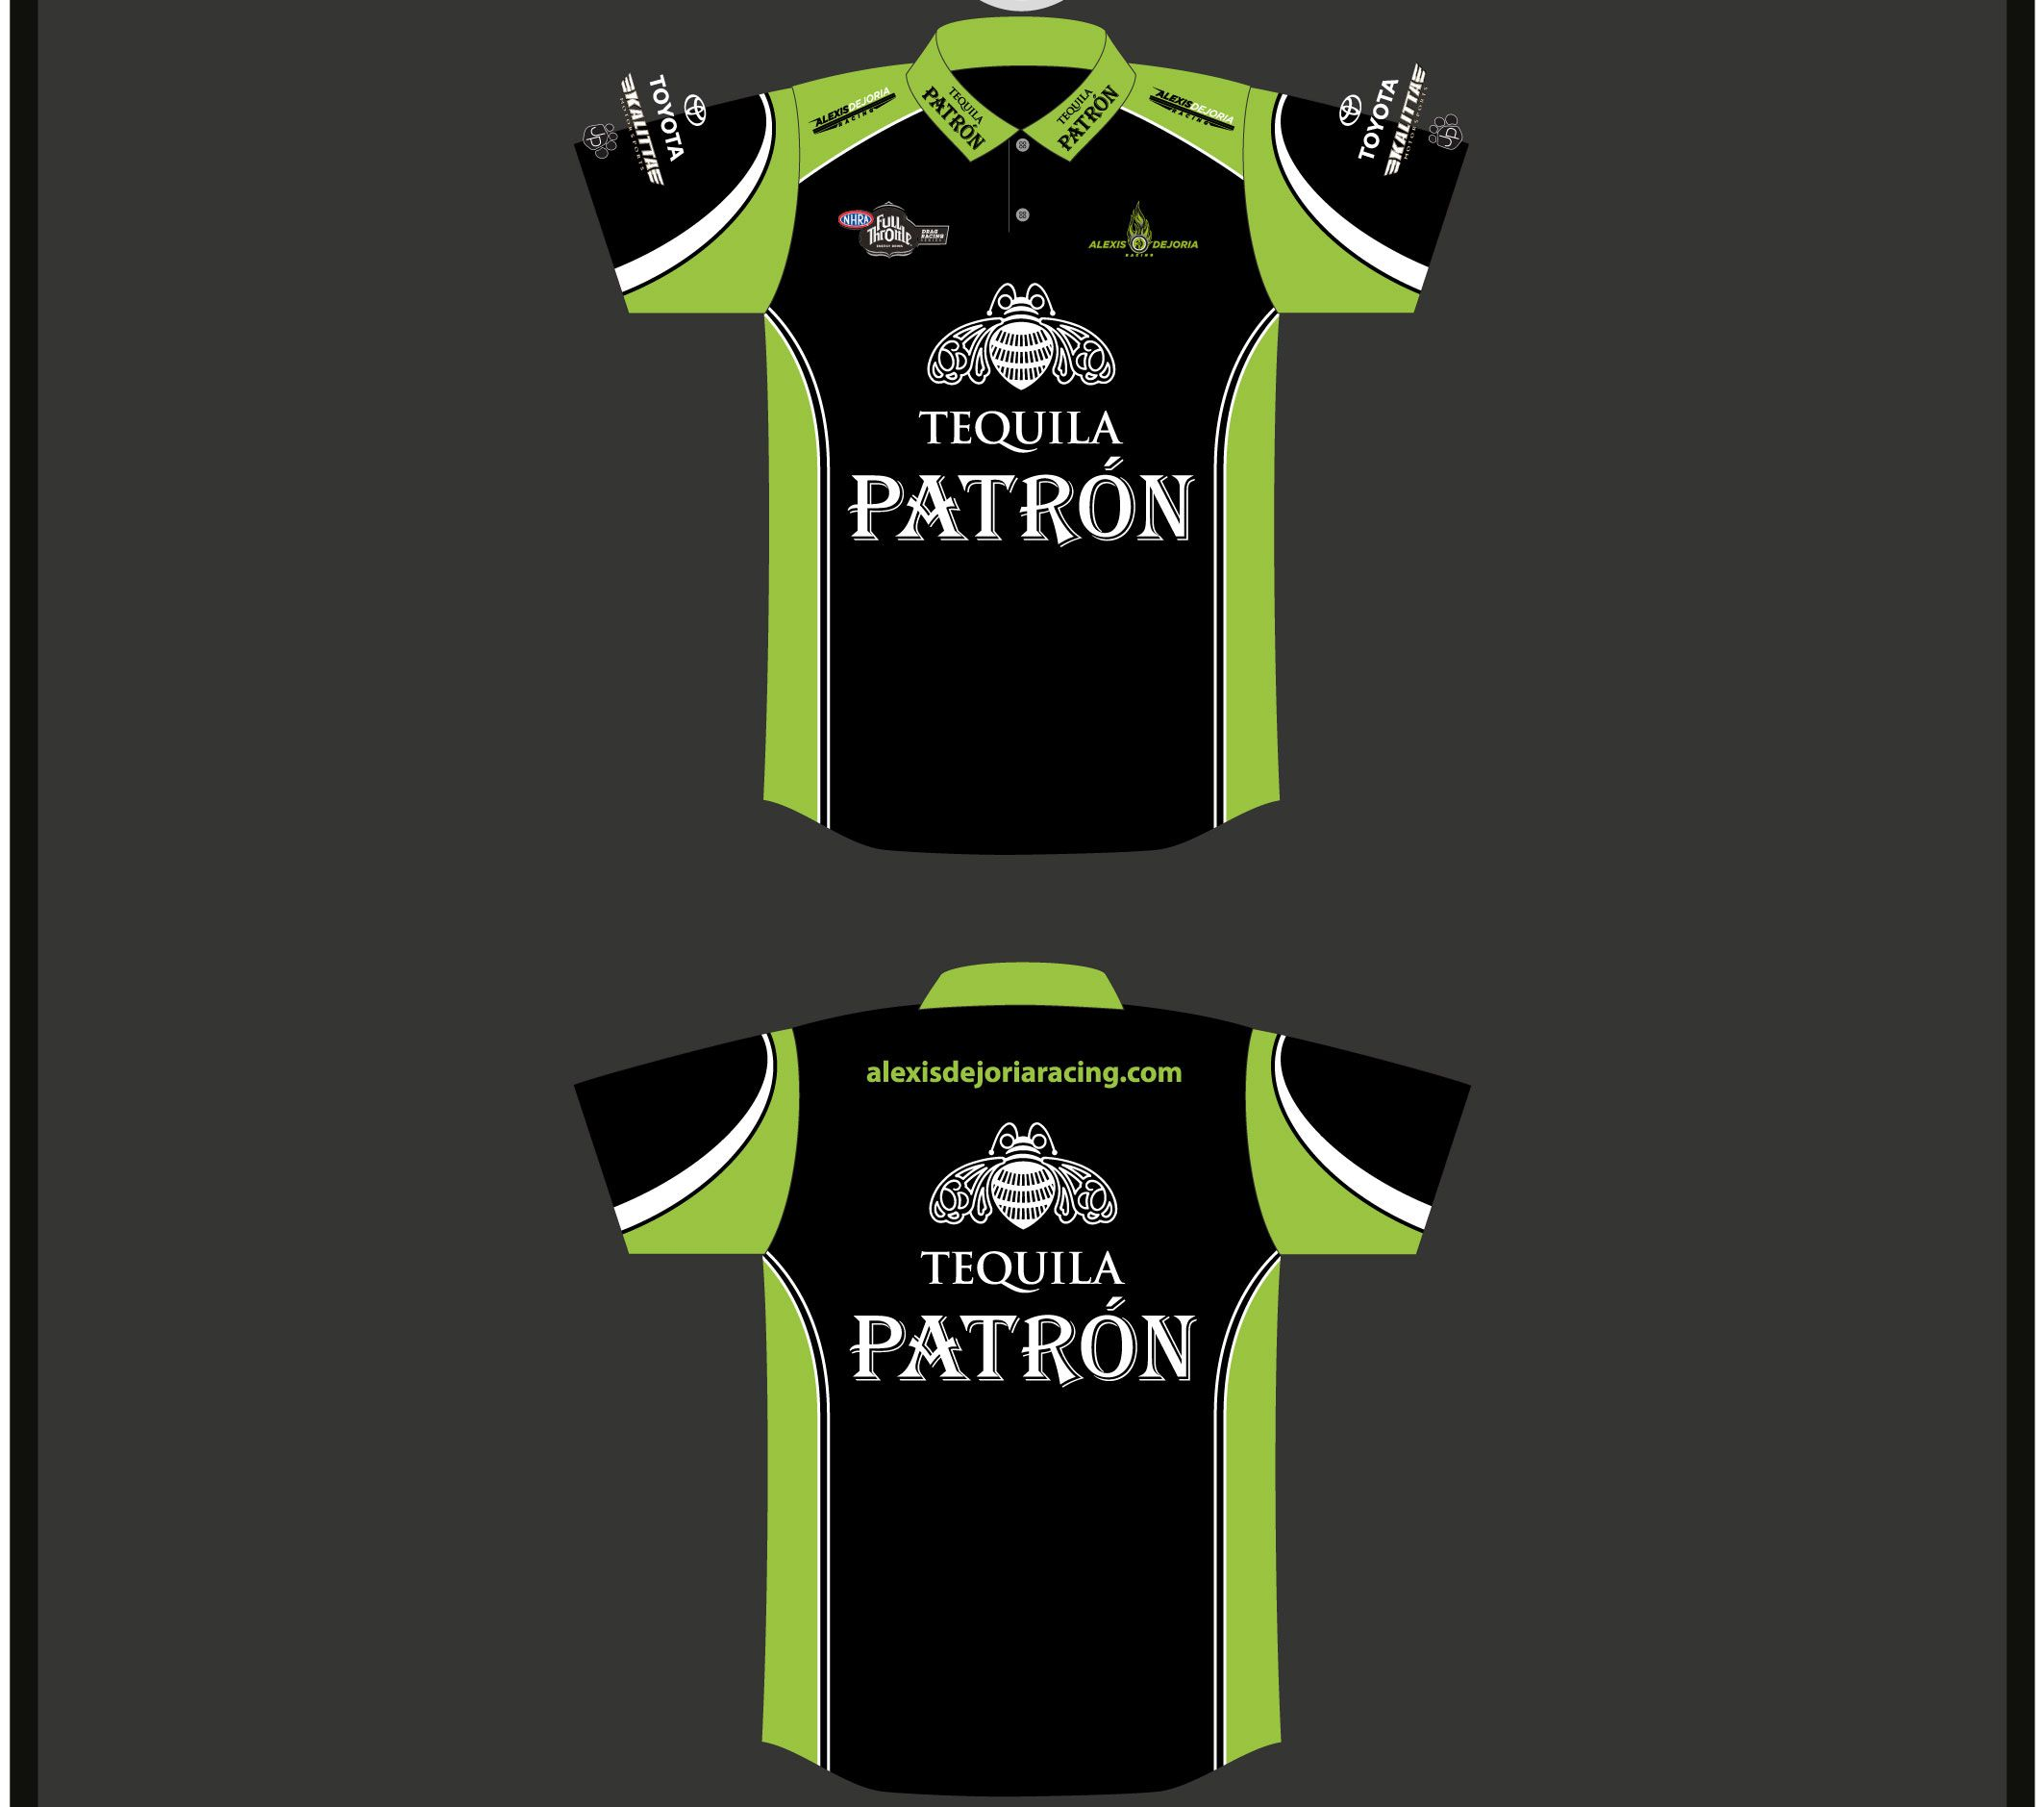 Patrone Sublimated Racing Pit Crew Shirt Design Www